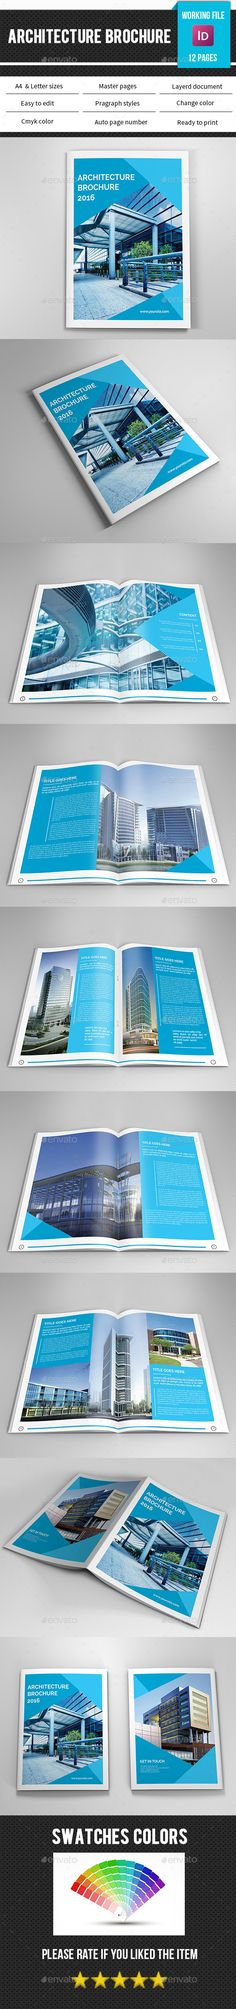 Corporate Brochure Template InDesign INDD #design Download: http://graphicriver.net/item/corporate-brochure-templatev330/14263832?ref=ksioks